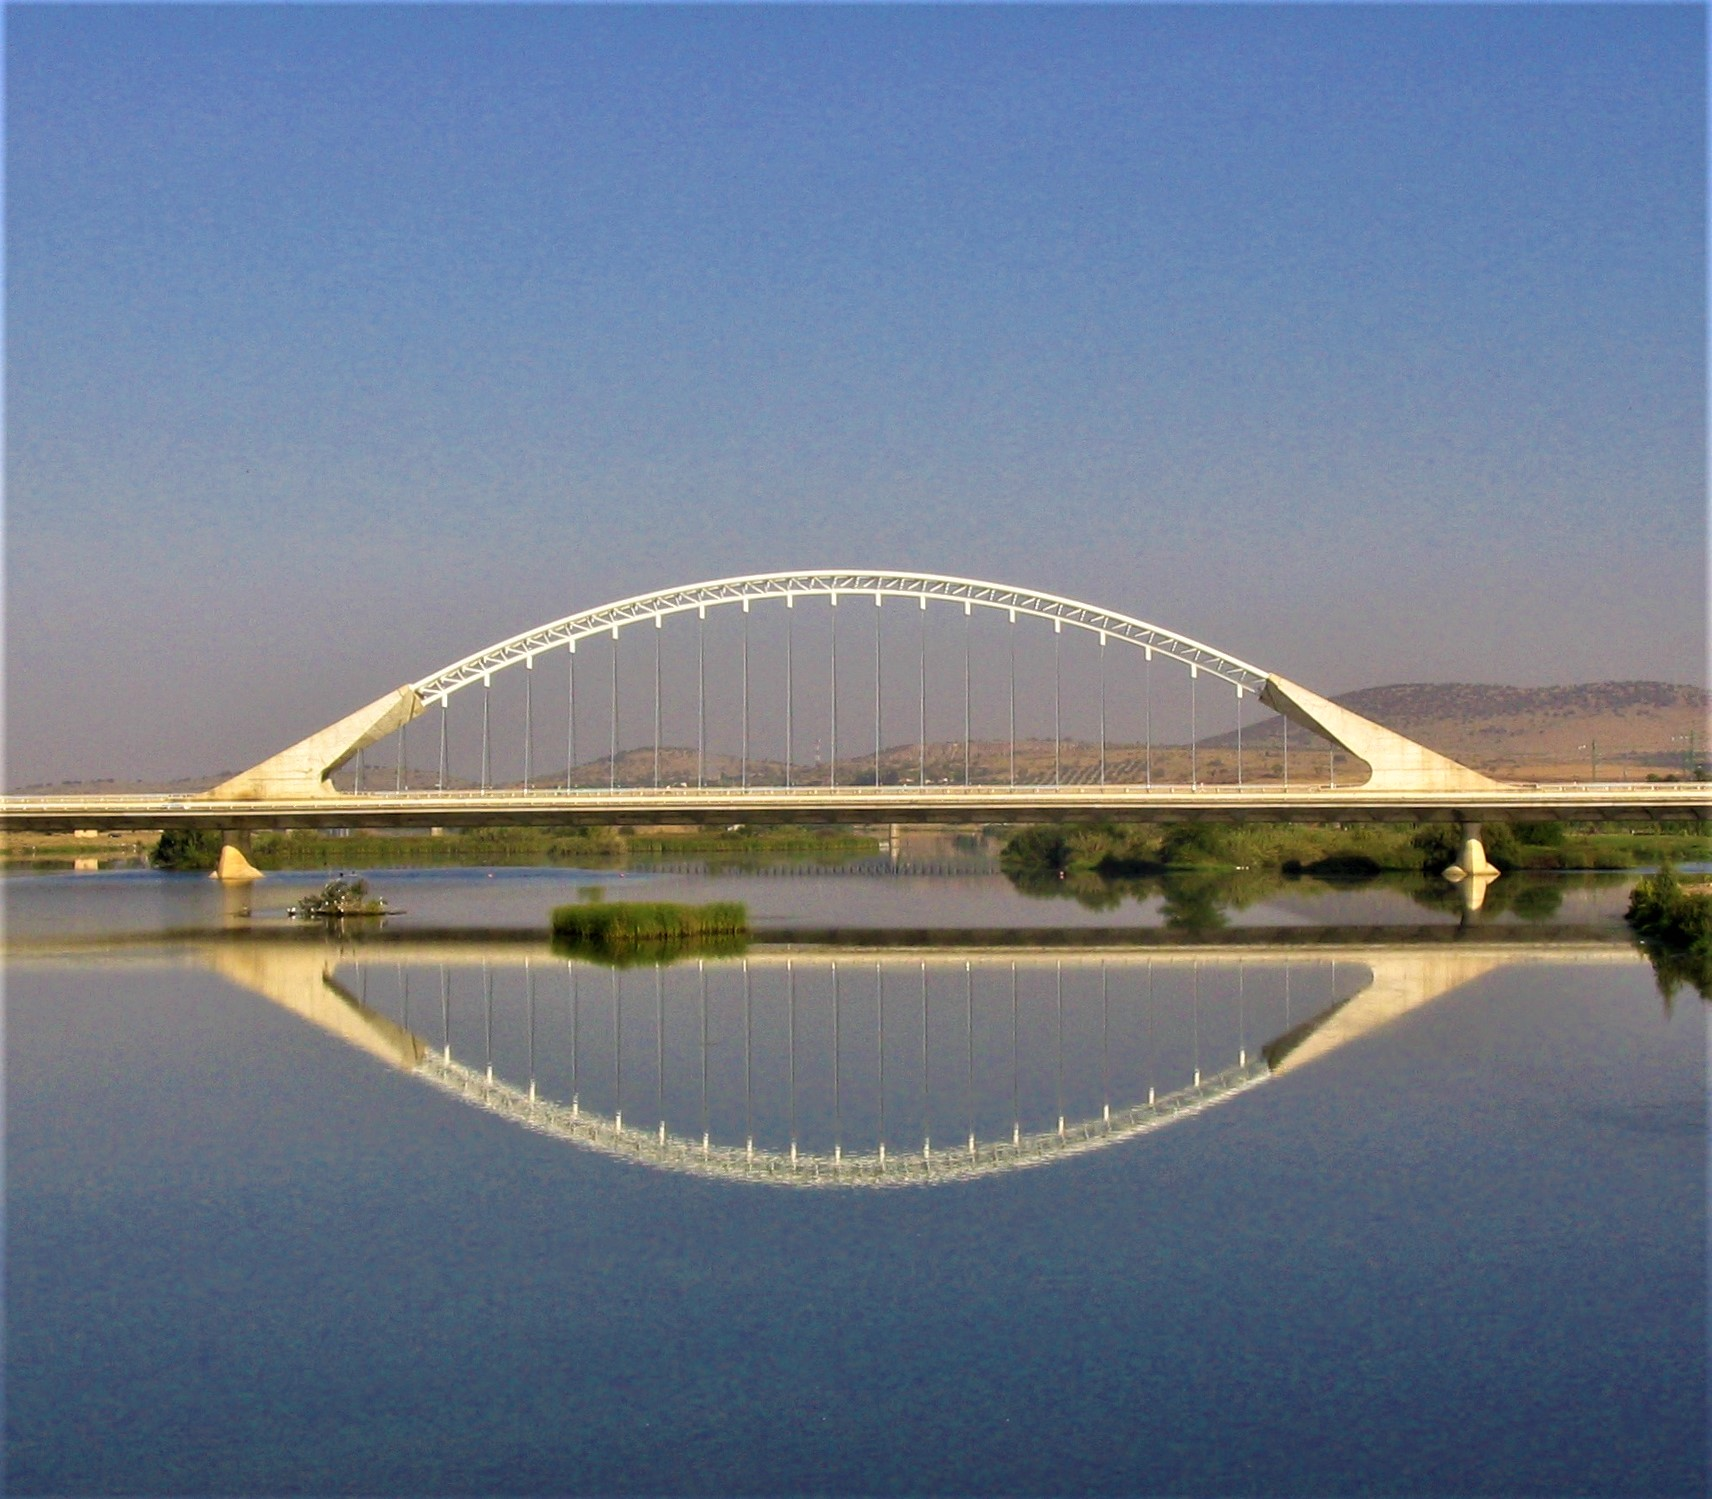 a reflection of the New Bridge over the River Guadiana taken from the Roman Bridge